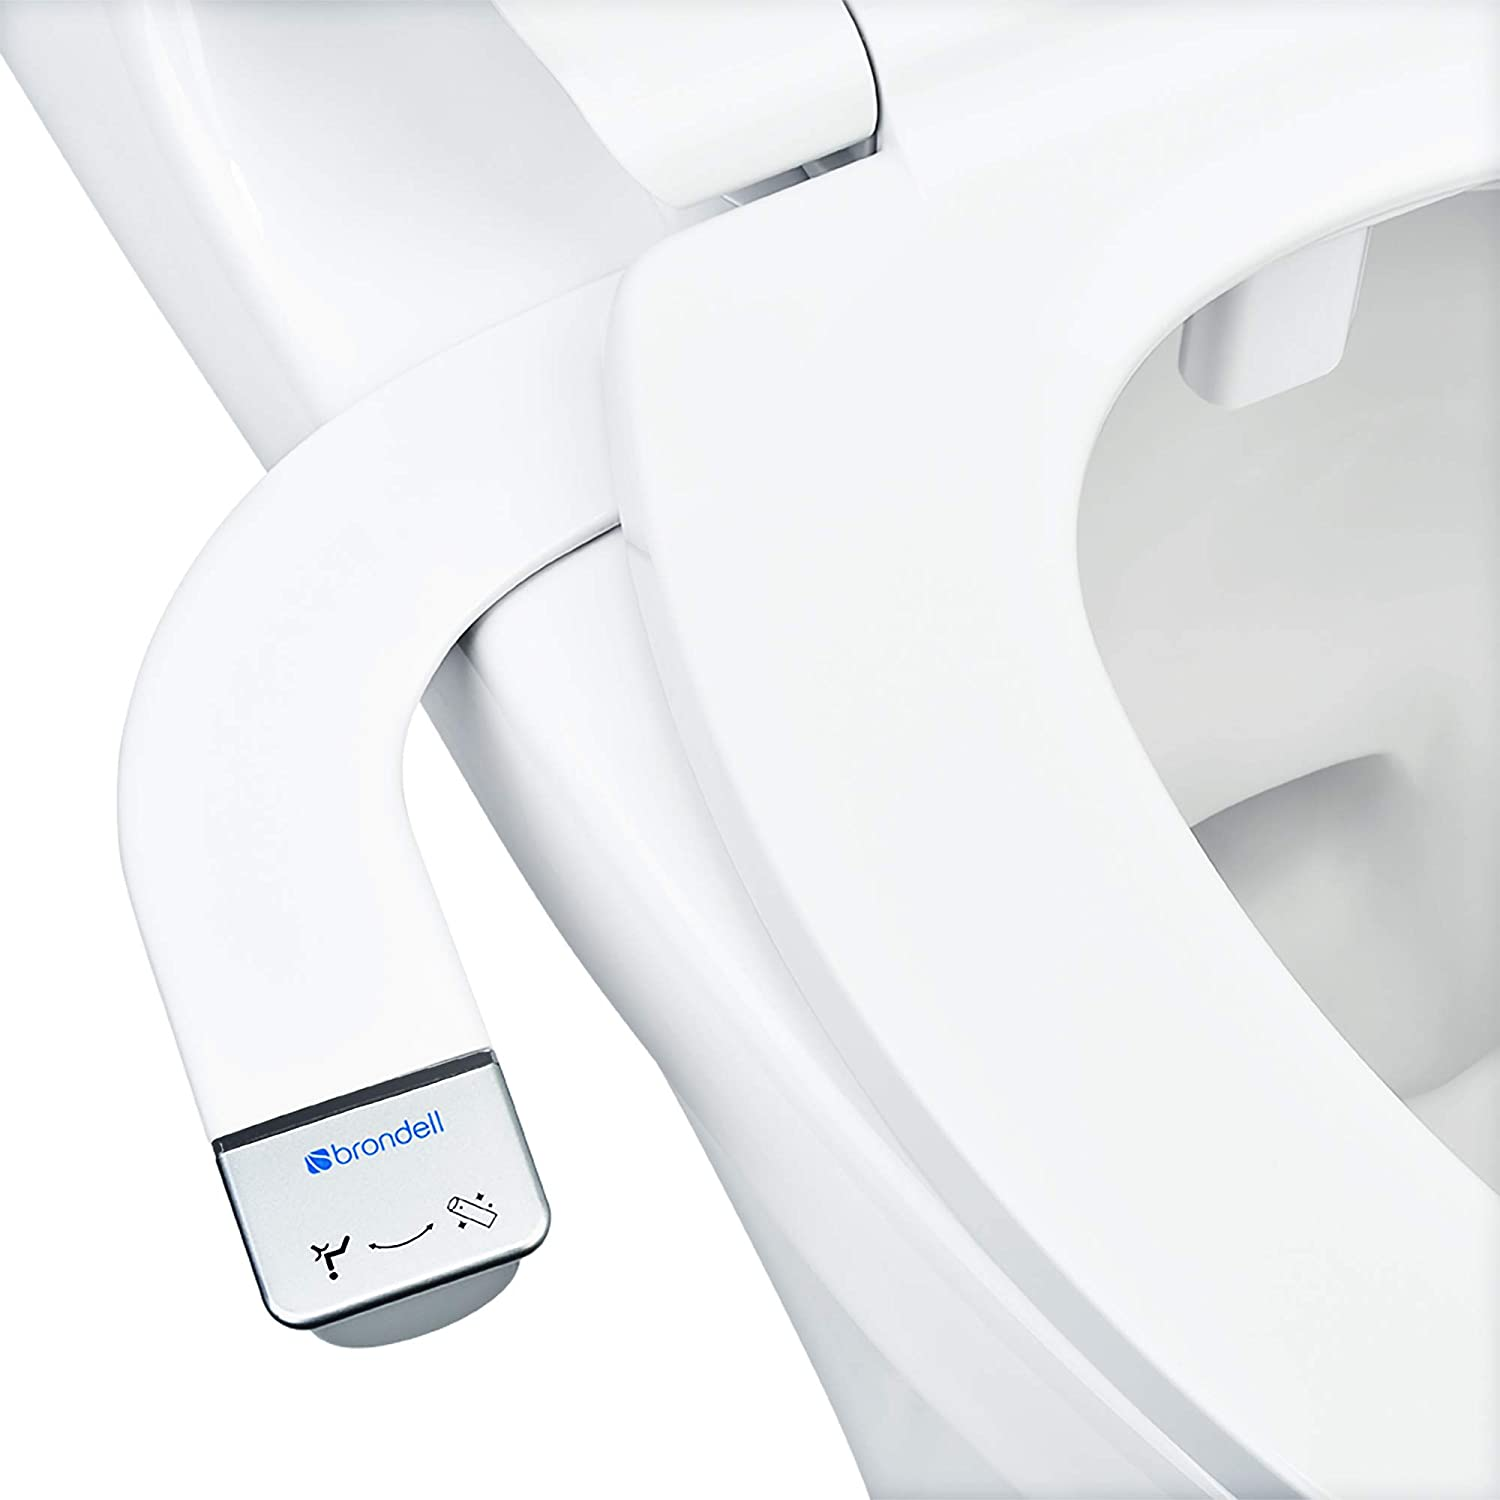 Brondell SS-150 Thinline SimpleSpa Self-Cleaning Bidet Attachment